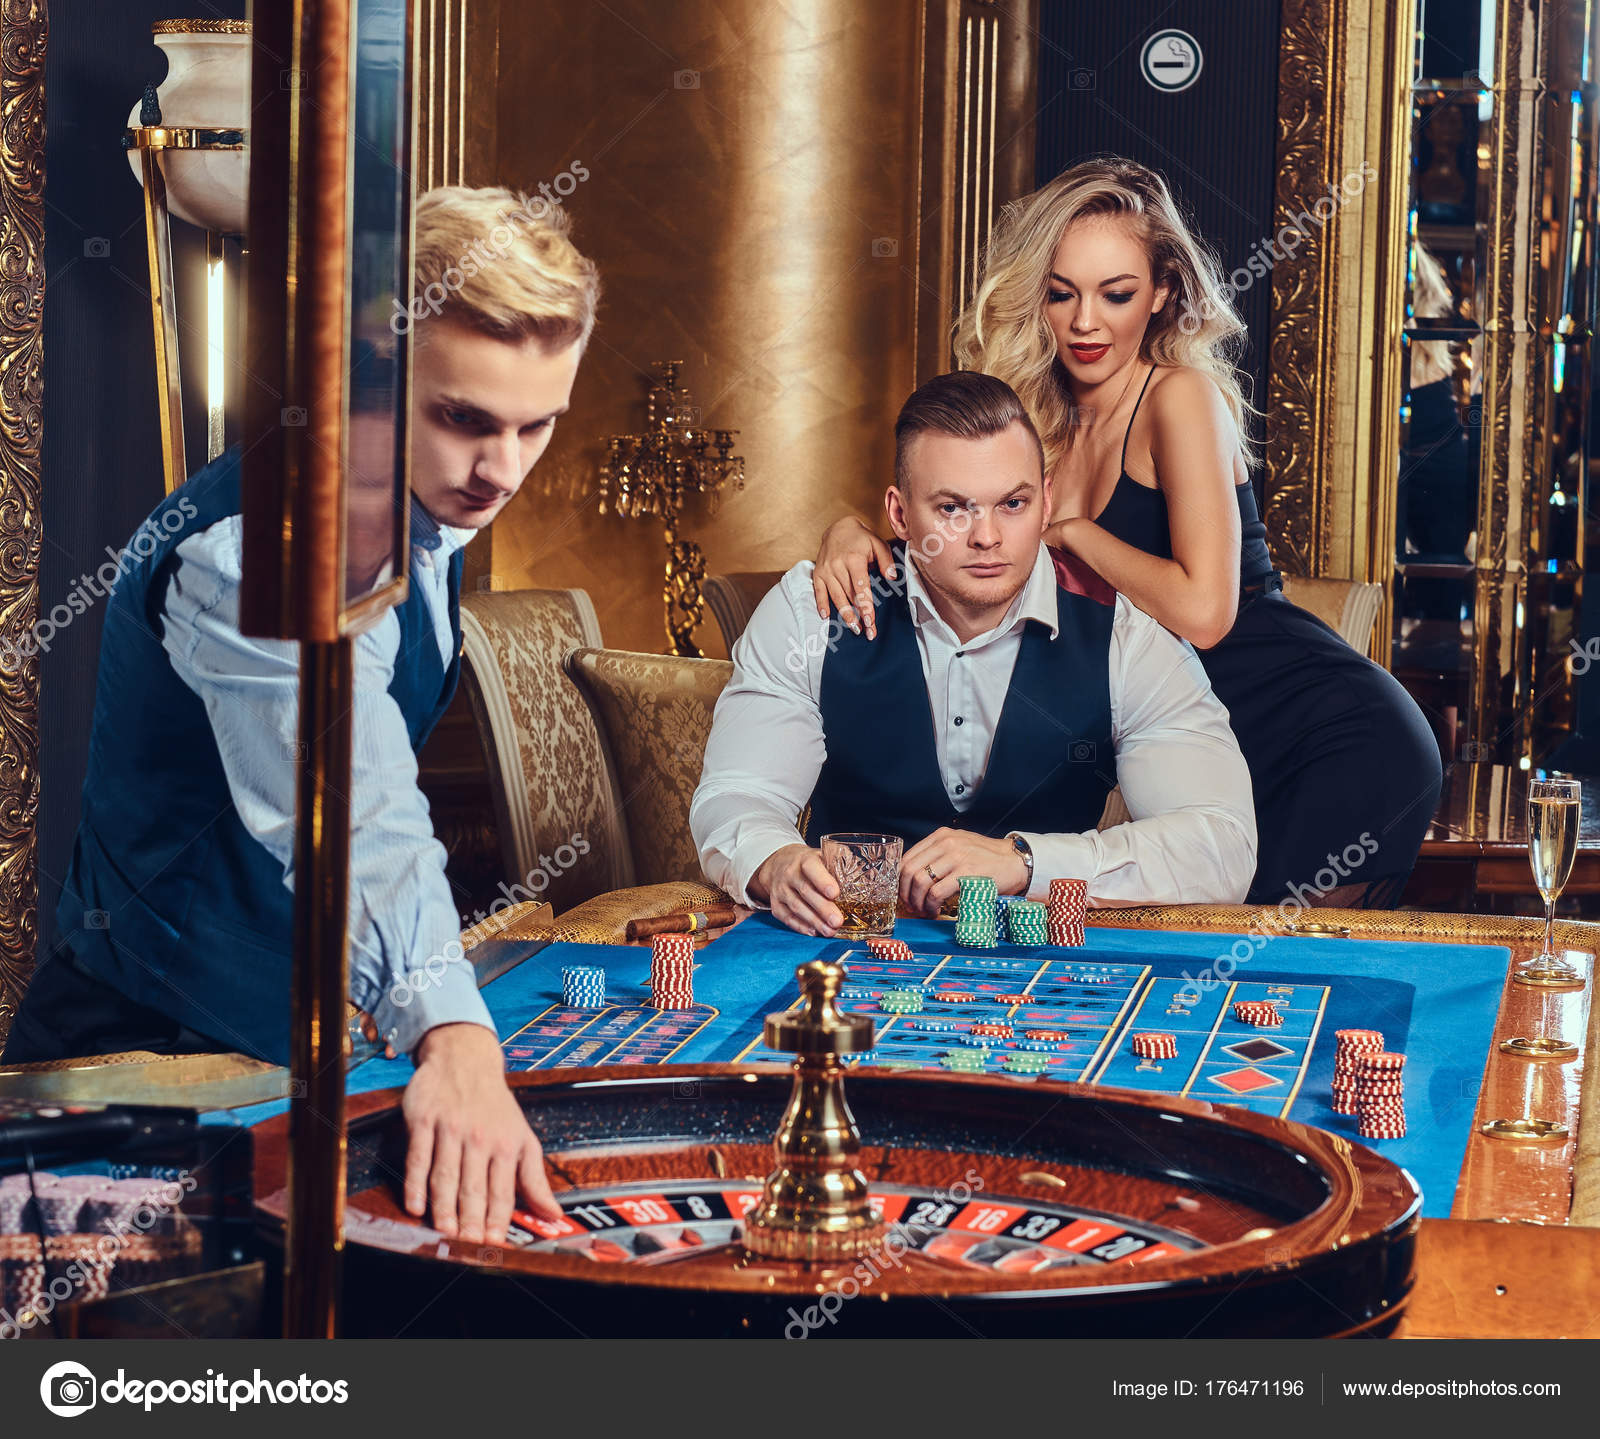 Croupier Playing Roulette Elegant Male Attractive Blond Female Casino Stock  Photo by ©fxquadro 176471196